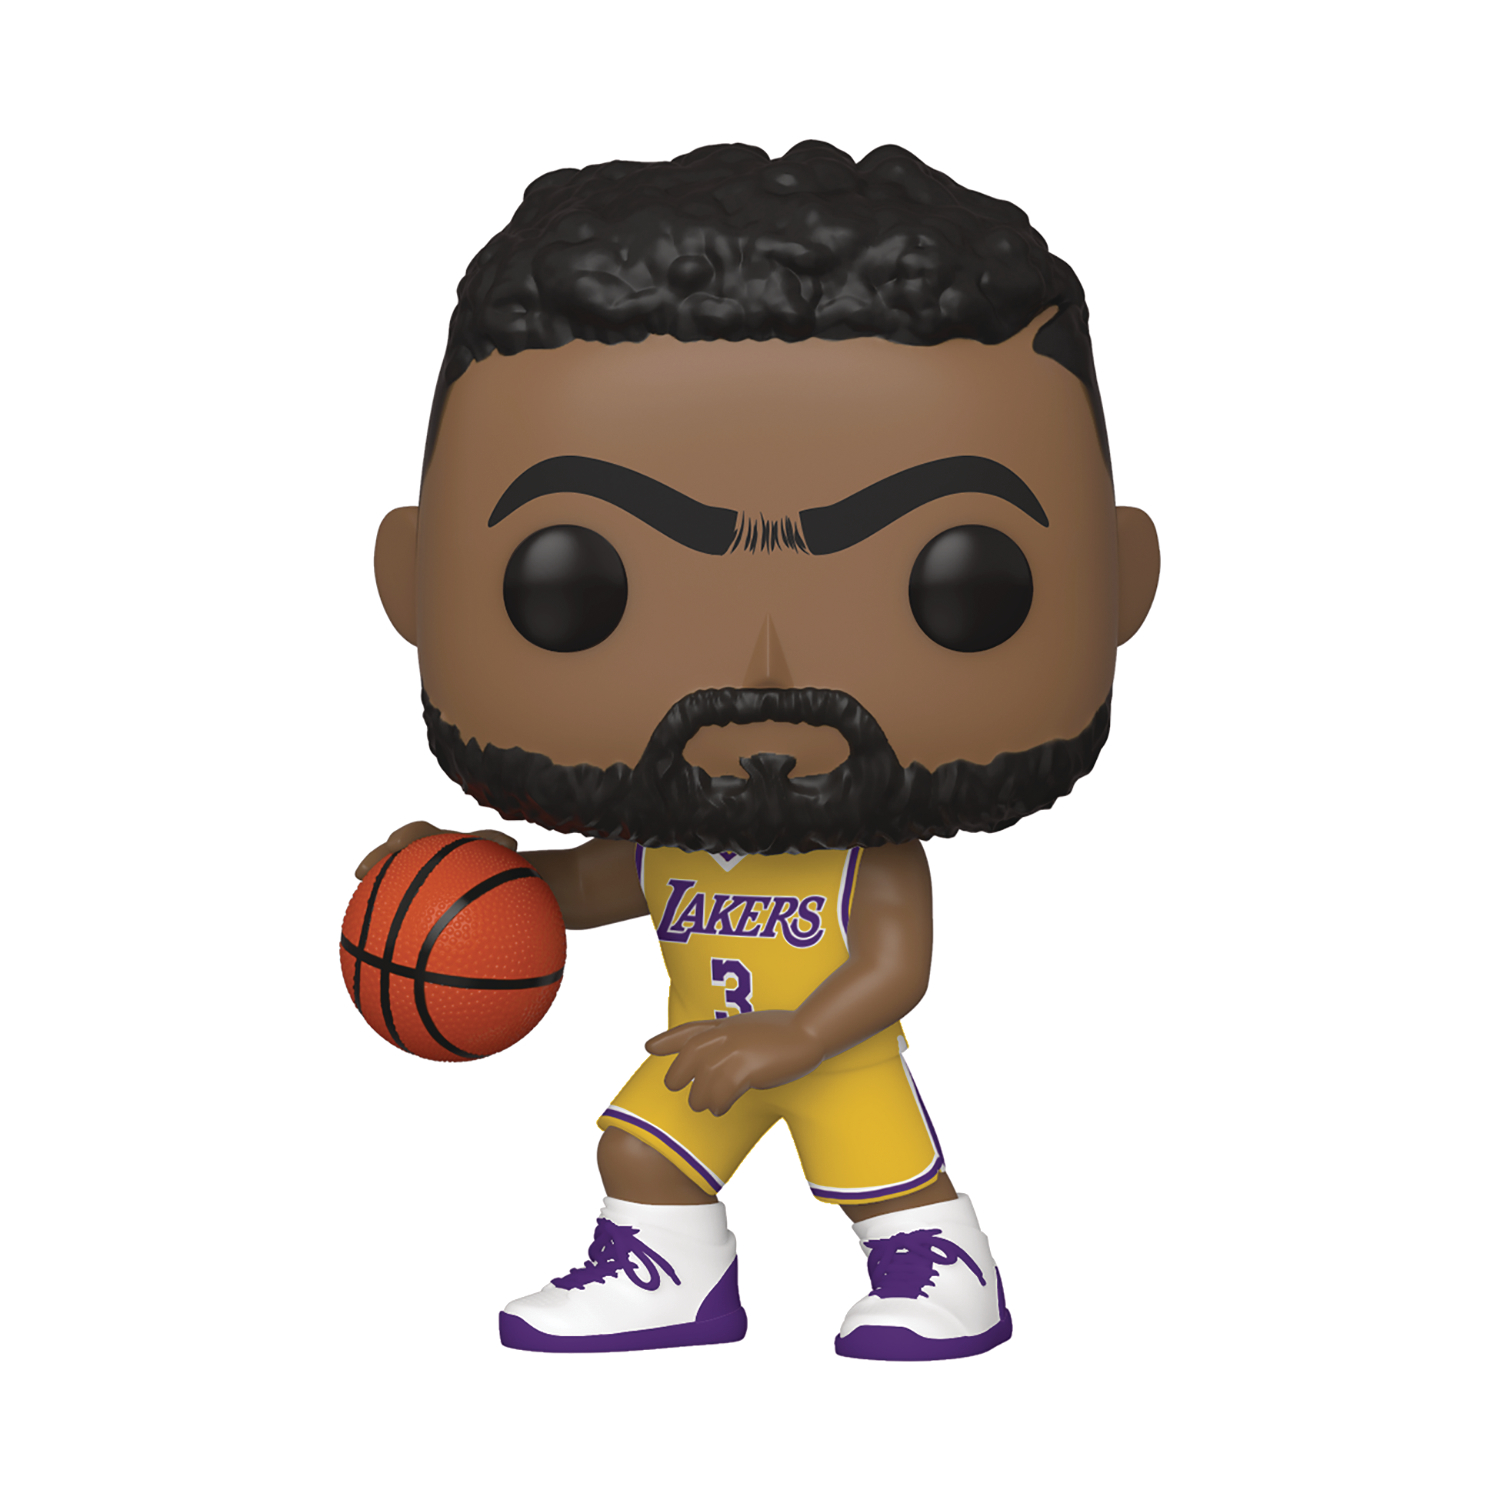 POP NBA LAKERS ANTHONY DAVIS VIN FIG